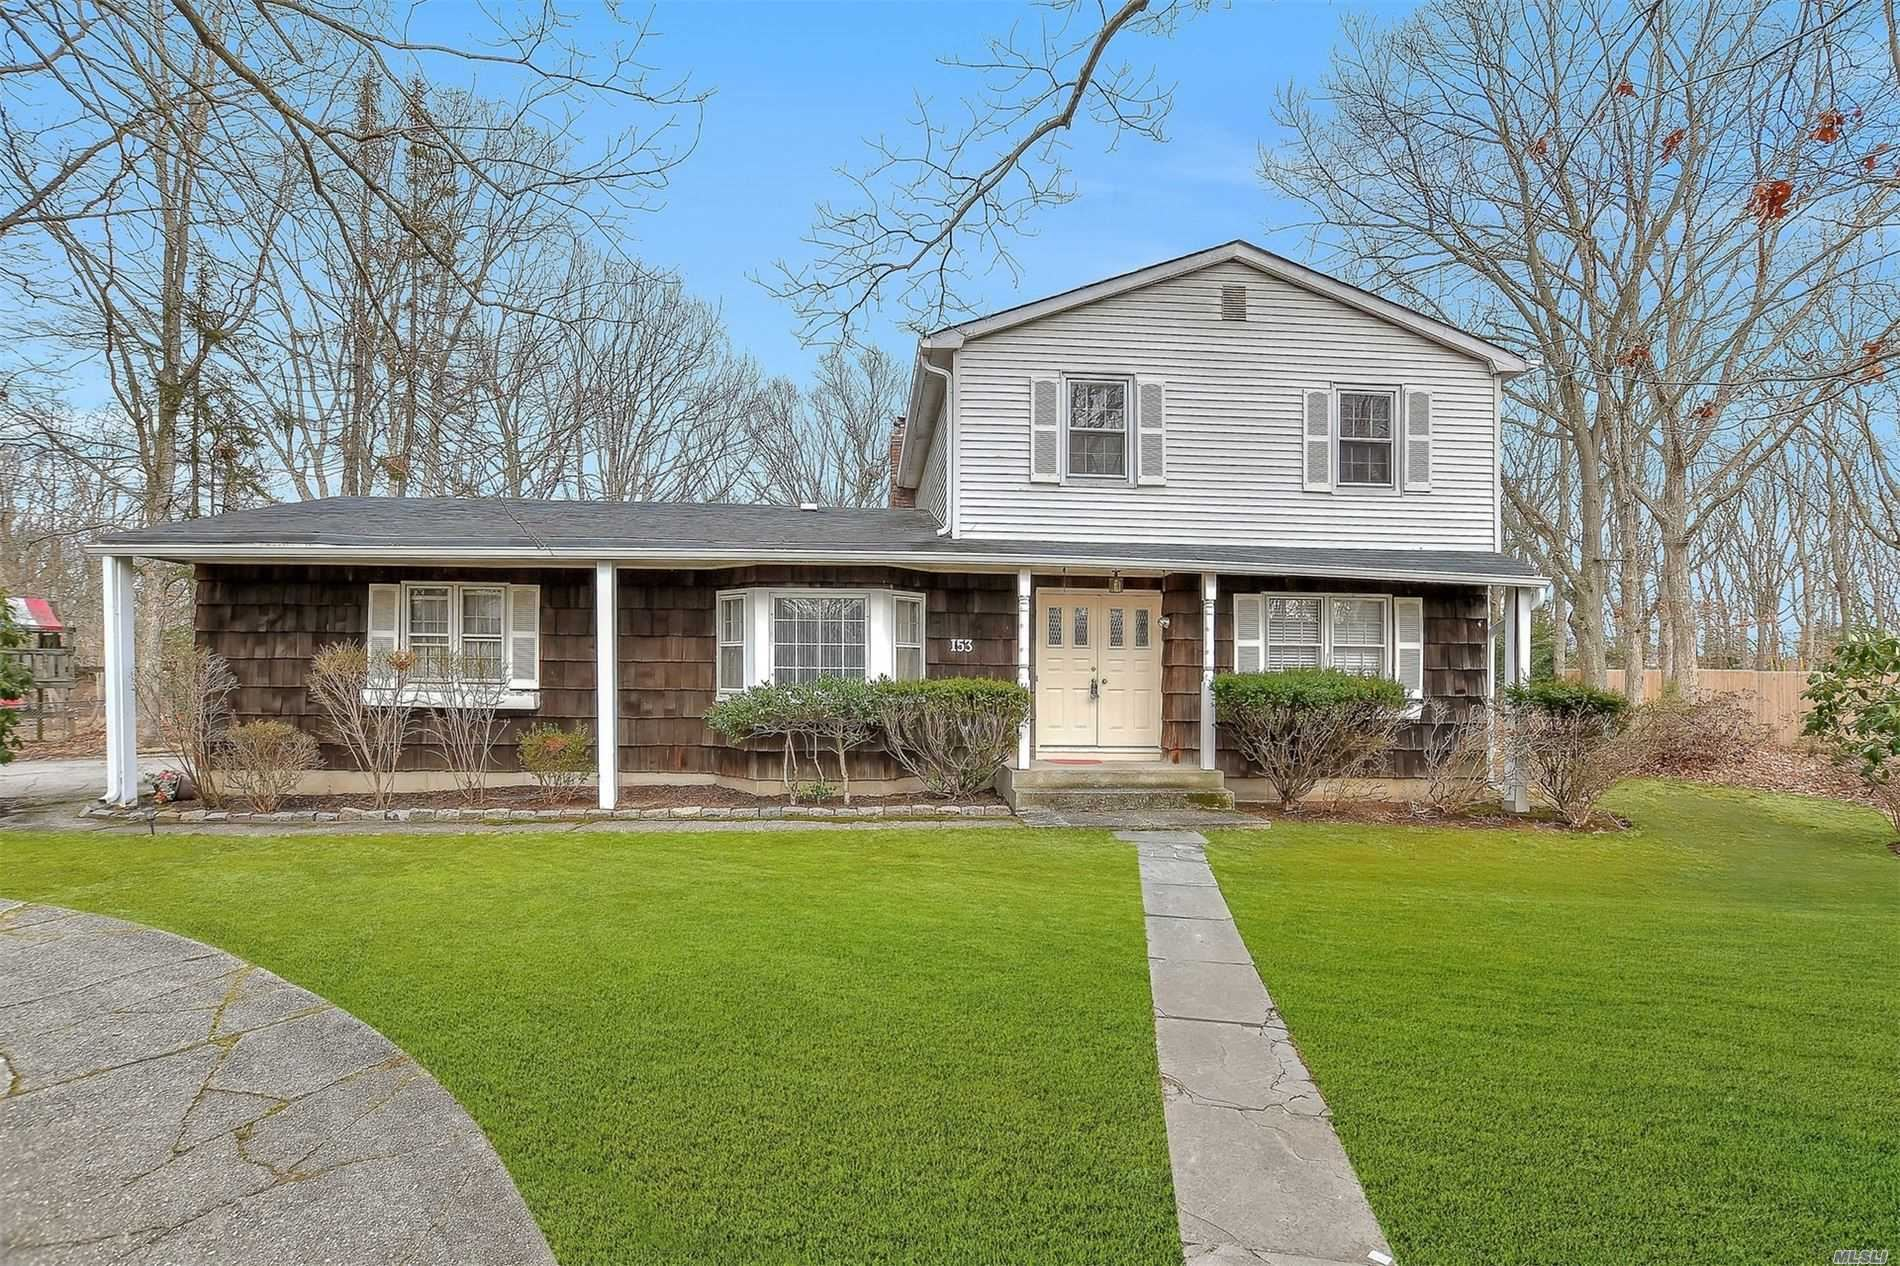 153 Miller Place Road, Miller Place, NY 11764 - MLS#: 3203925